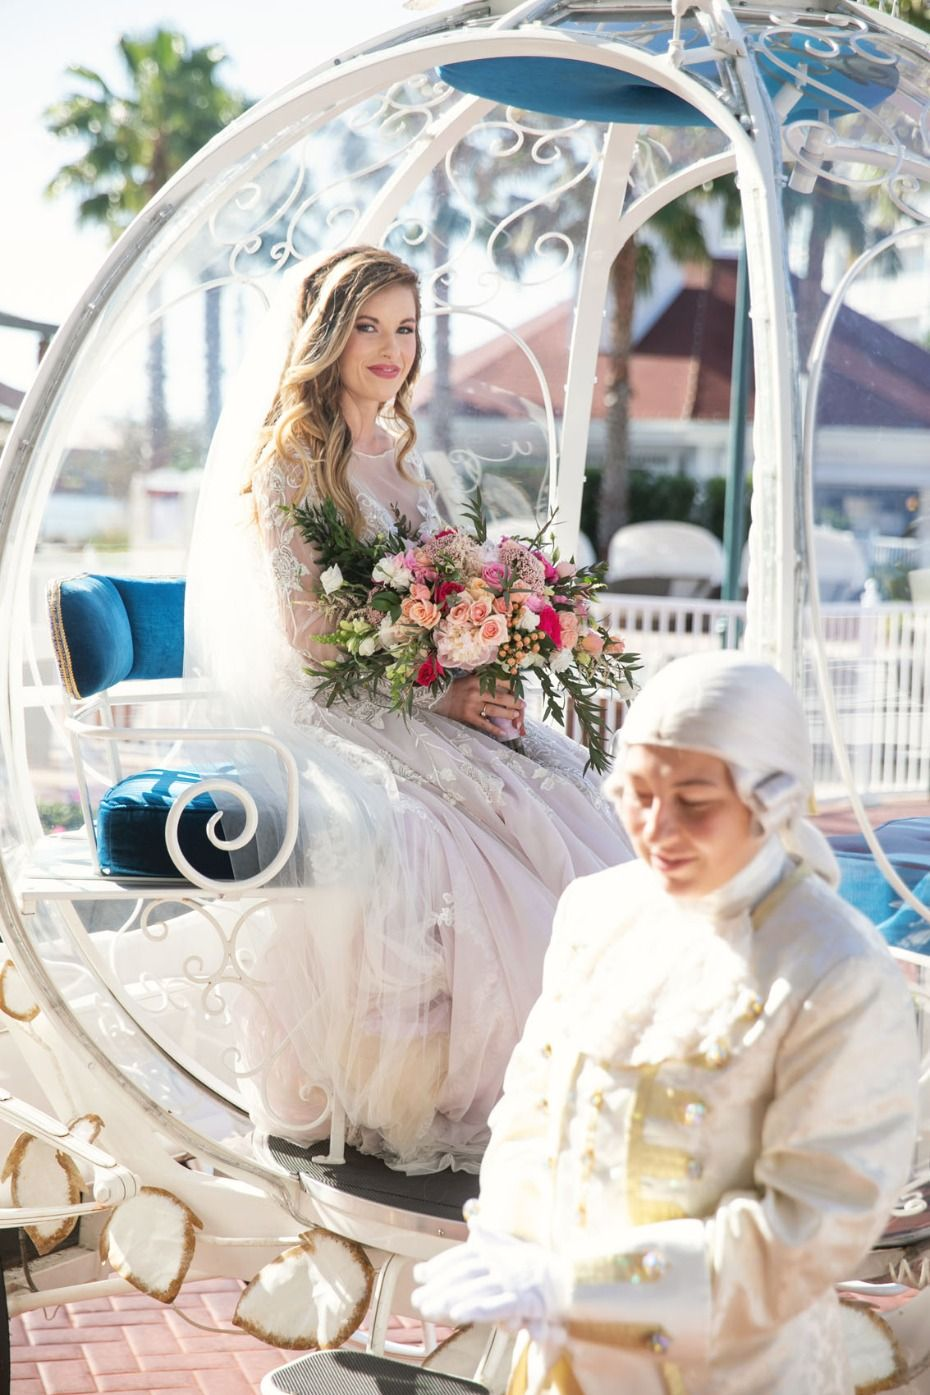 This Is How Much a Disney World Wedding Costs  Disney world